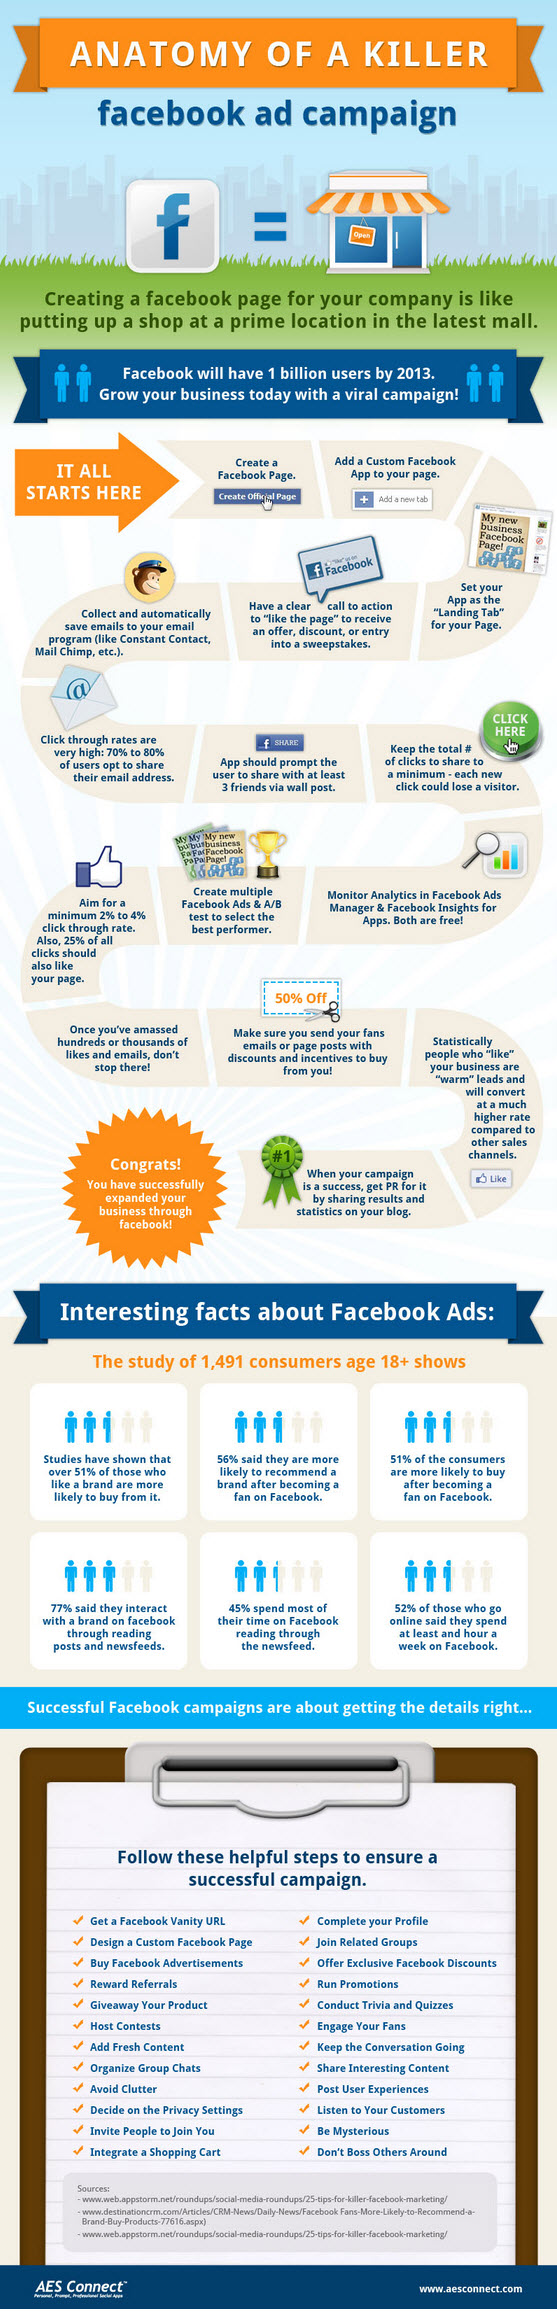 Anatomy-Of-A-Killer-Facebook-Ad-Campaign-infographic